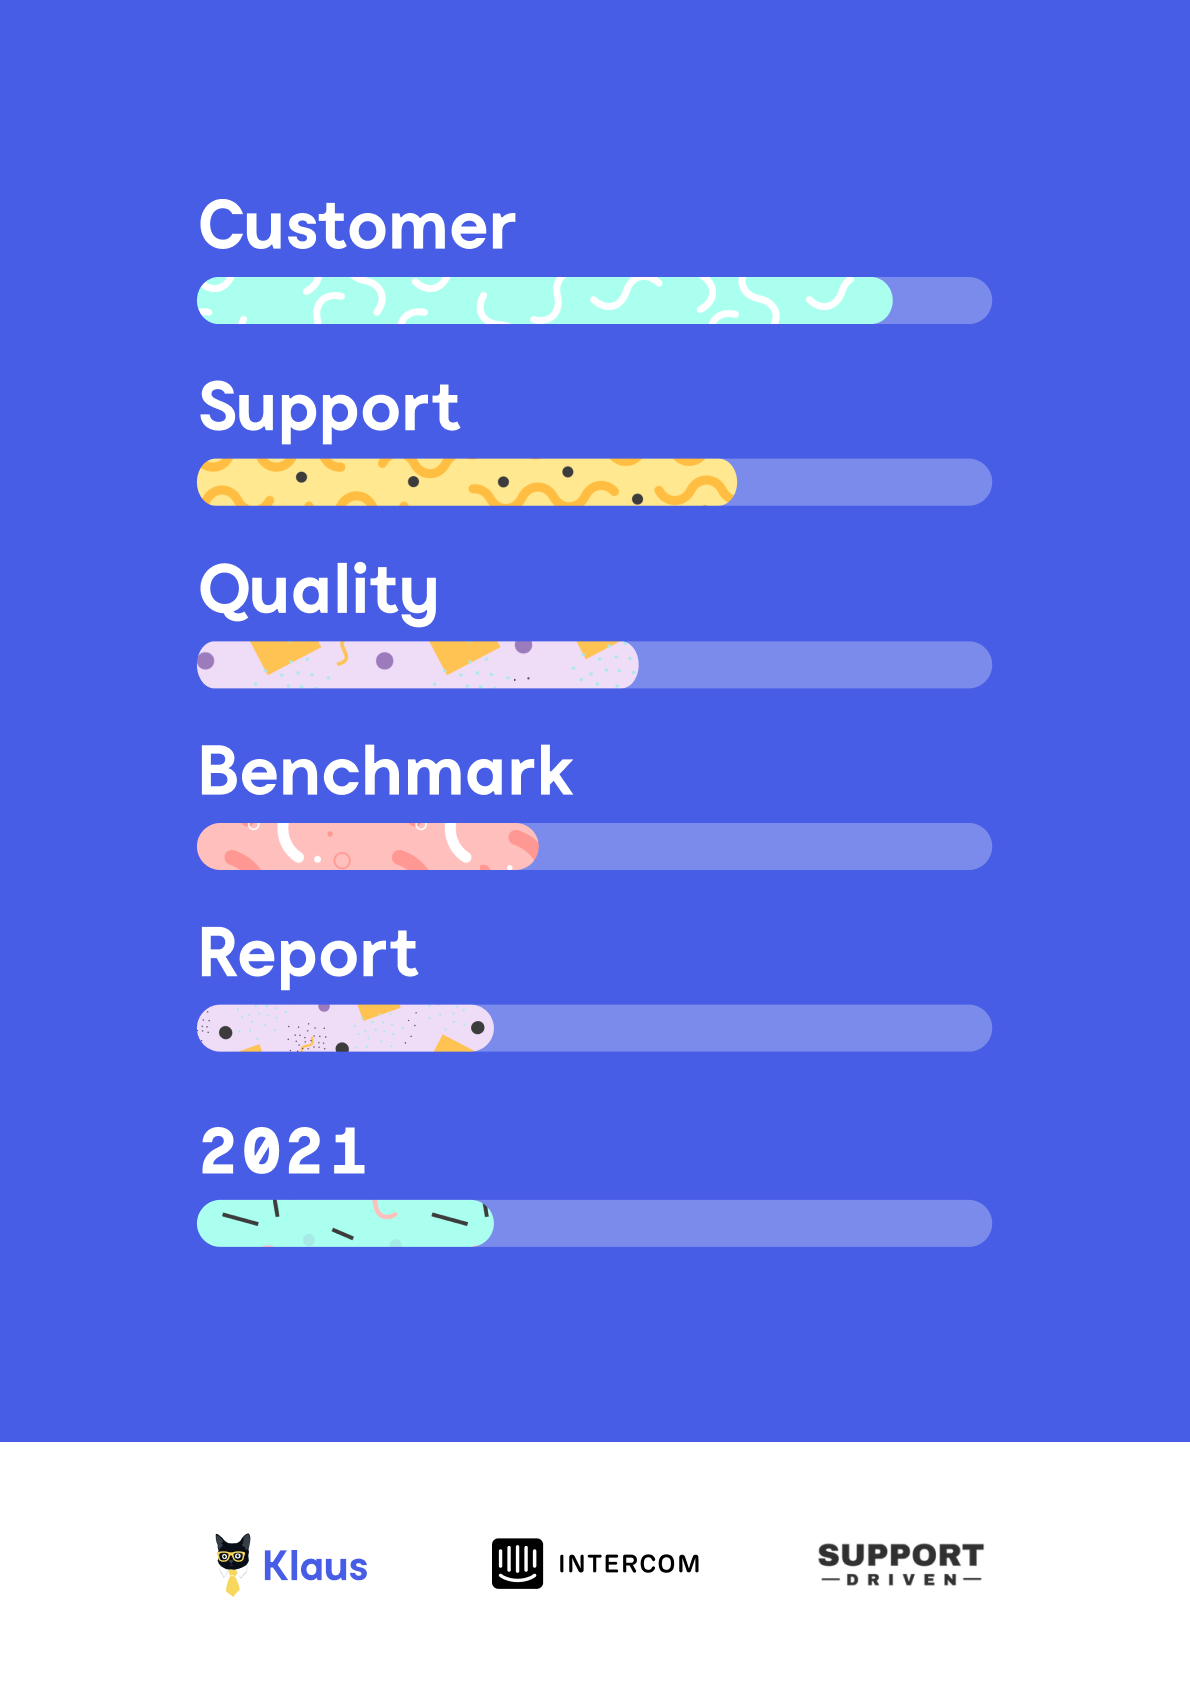 """The world of customer support is changing and evolving. Teams are adopting new tools and strategies in order to provide world-class support. However, it's hard to understand what a """"good result"""" actually looks like. This report is designed to provide you with customer service benchmark figures focused on quality."""